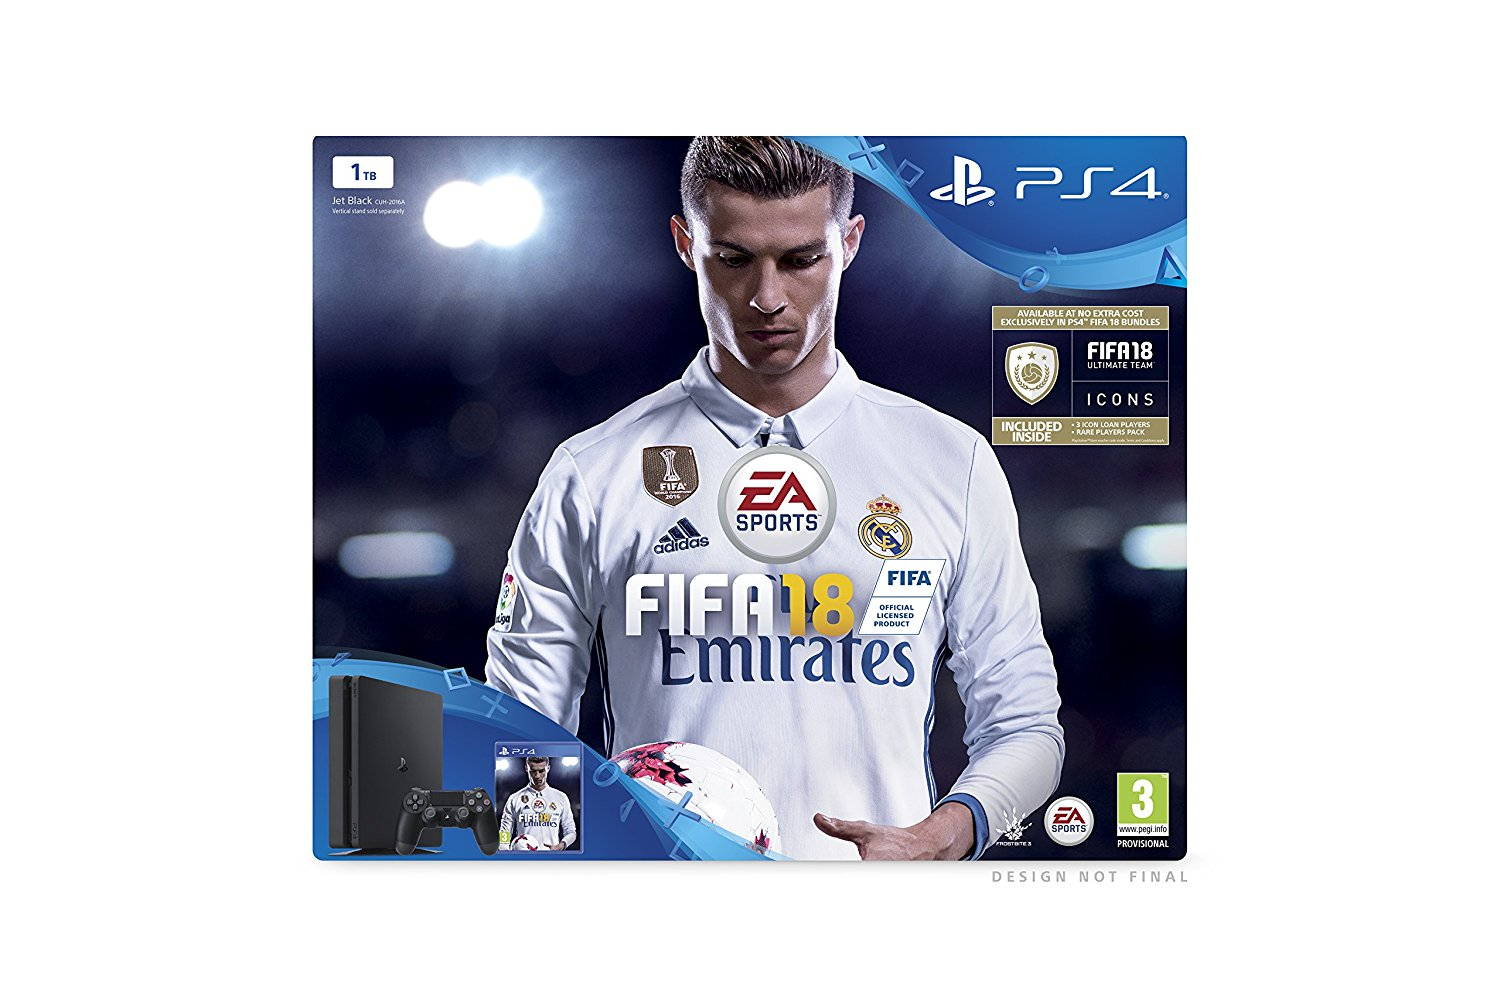 sony playstation 4 1tb console black fifa 18 bundle ebay. Black Bedroom Furniture Sets. Home Design Ideas